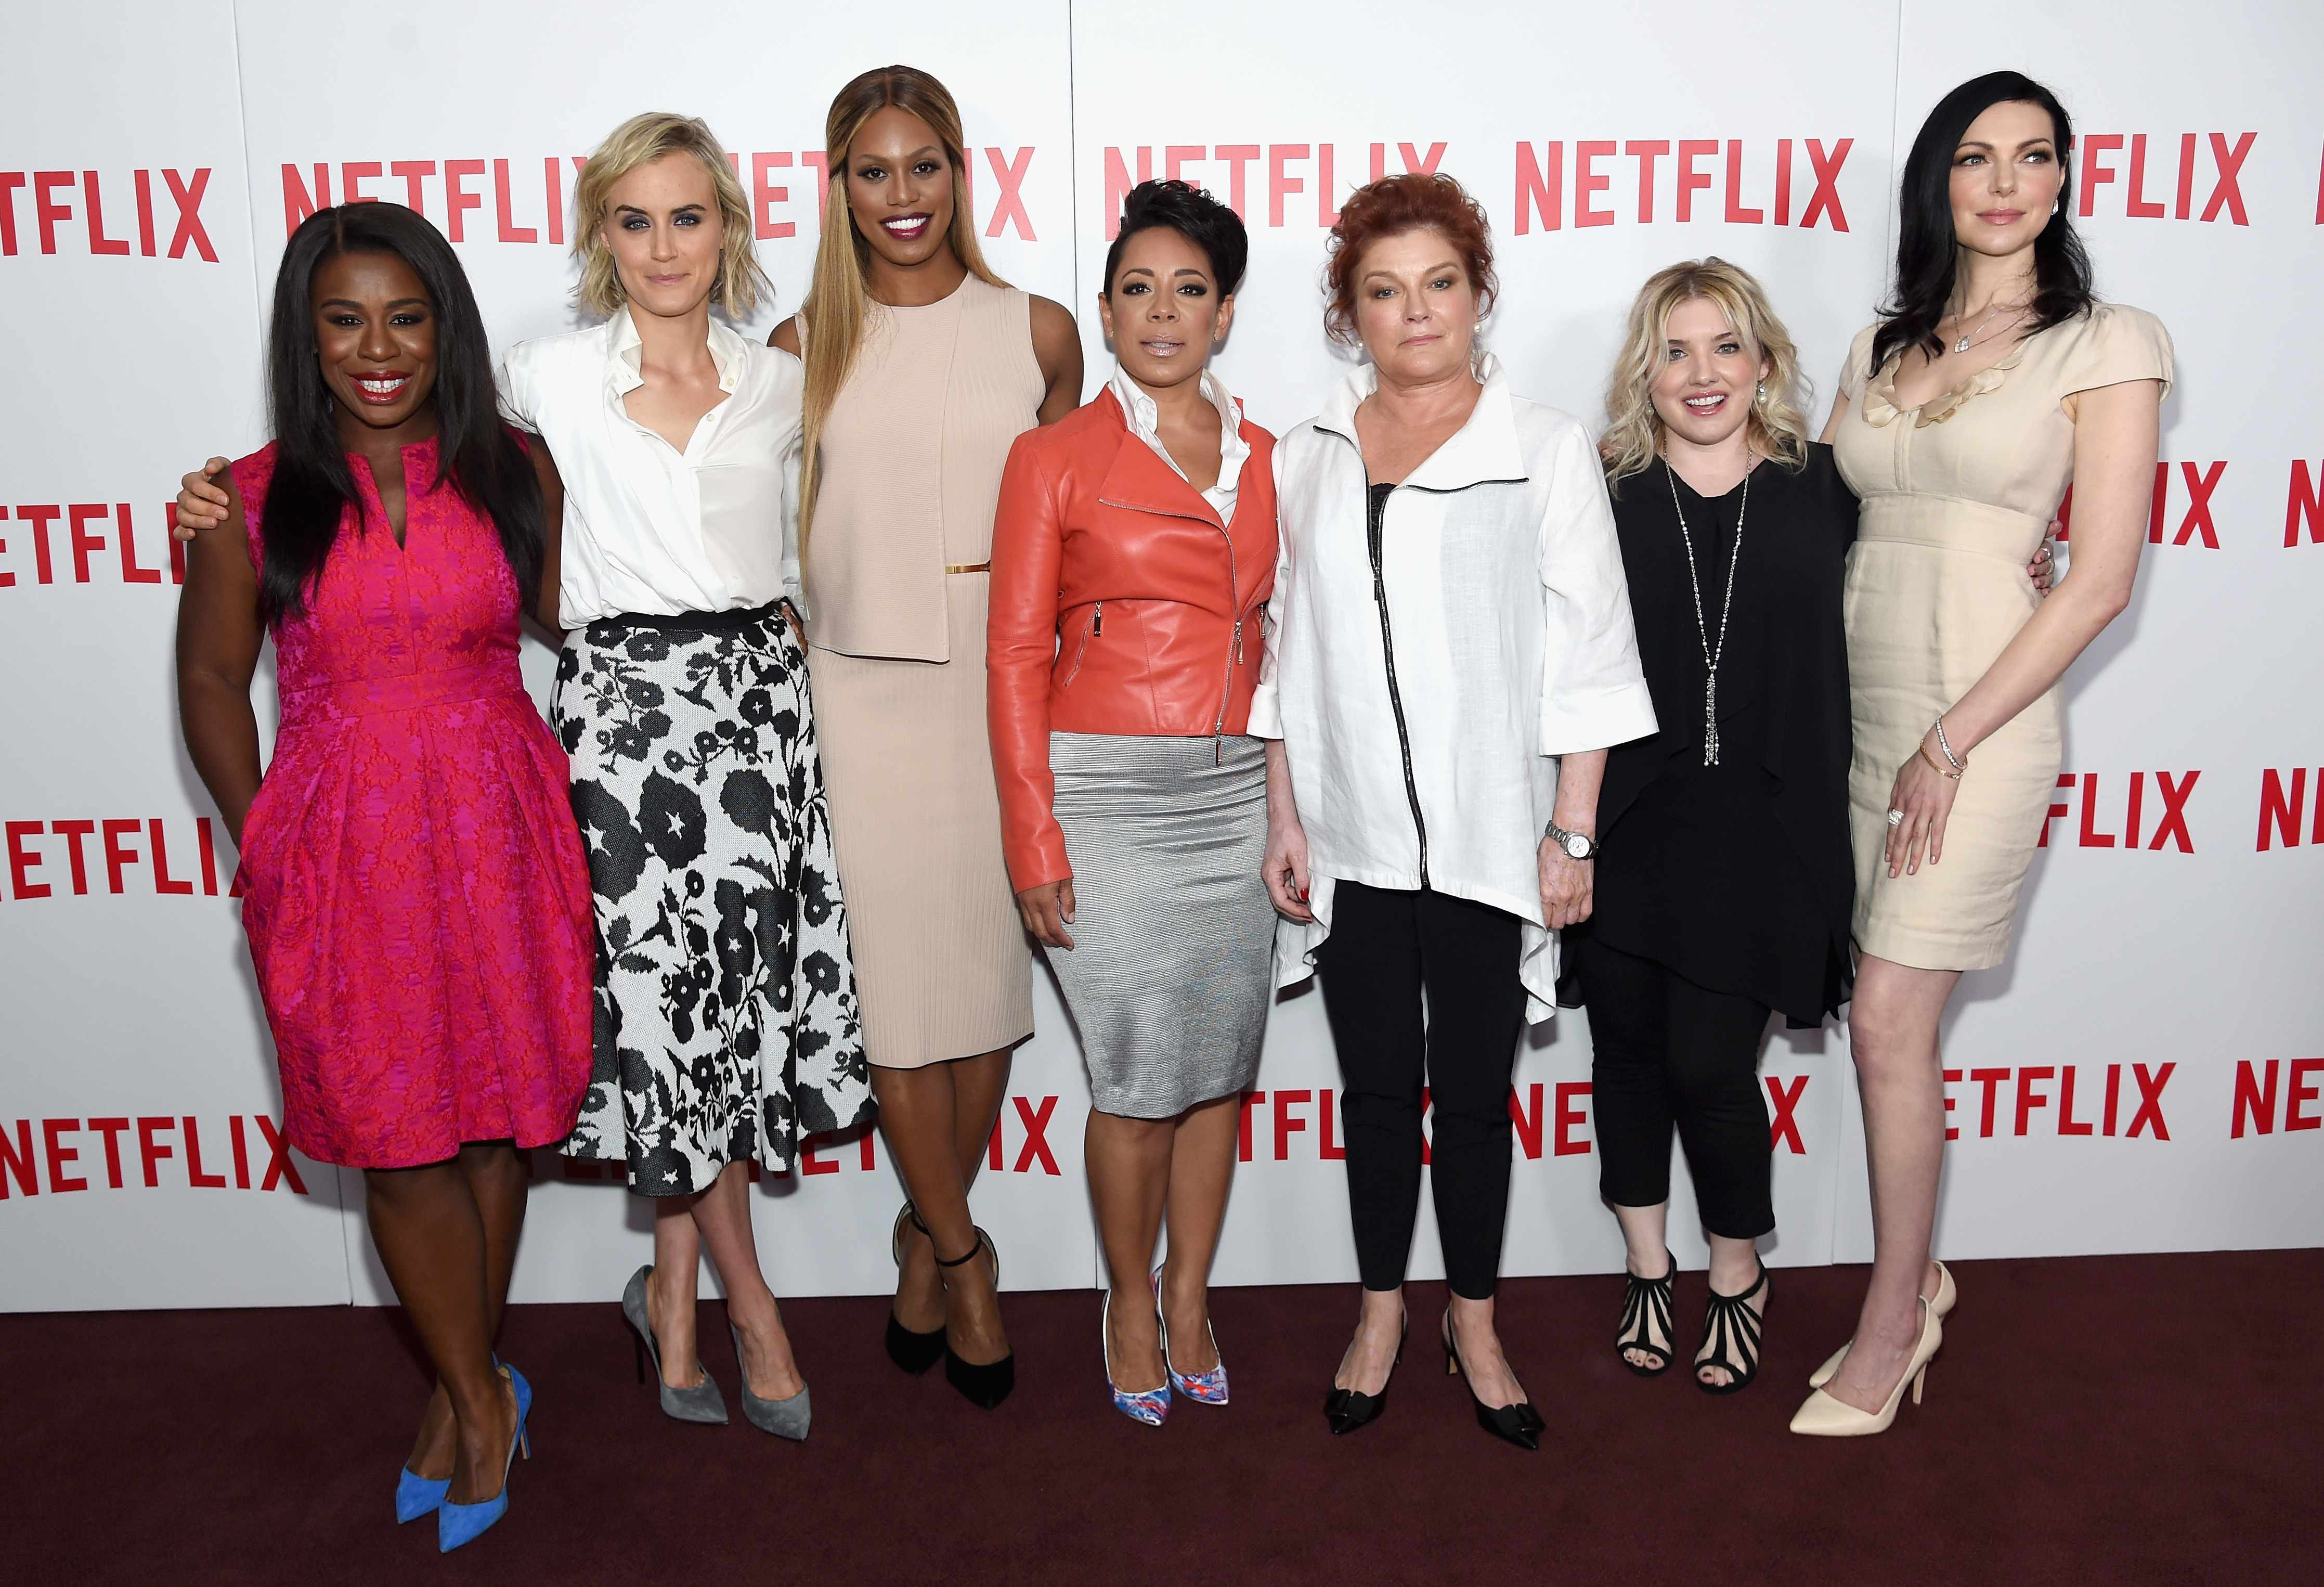 """NEW YORK, NY - AUGUST 11:  (L-R) Actresses Uzo Aduba, Taylor Schilling, Laverne Cox, Selenis Leyva, and Kate Mulgrew, casting director Jennifer Euston, and actress Laura Prepon attend the """"Orange Is The New Black"""" FYC screening at DGA Theater on August 11, 2015 in New York City.  (Photo by Jamie McCarthy/Getty Images)"""